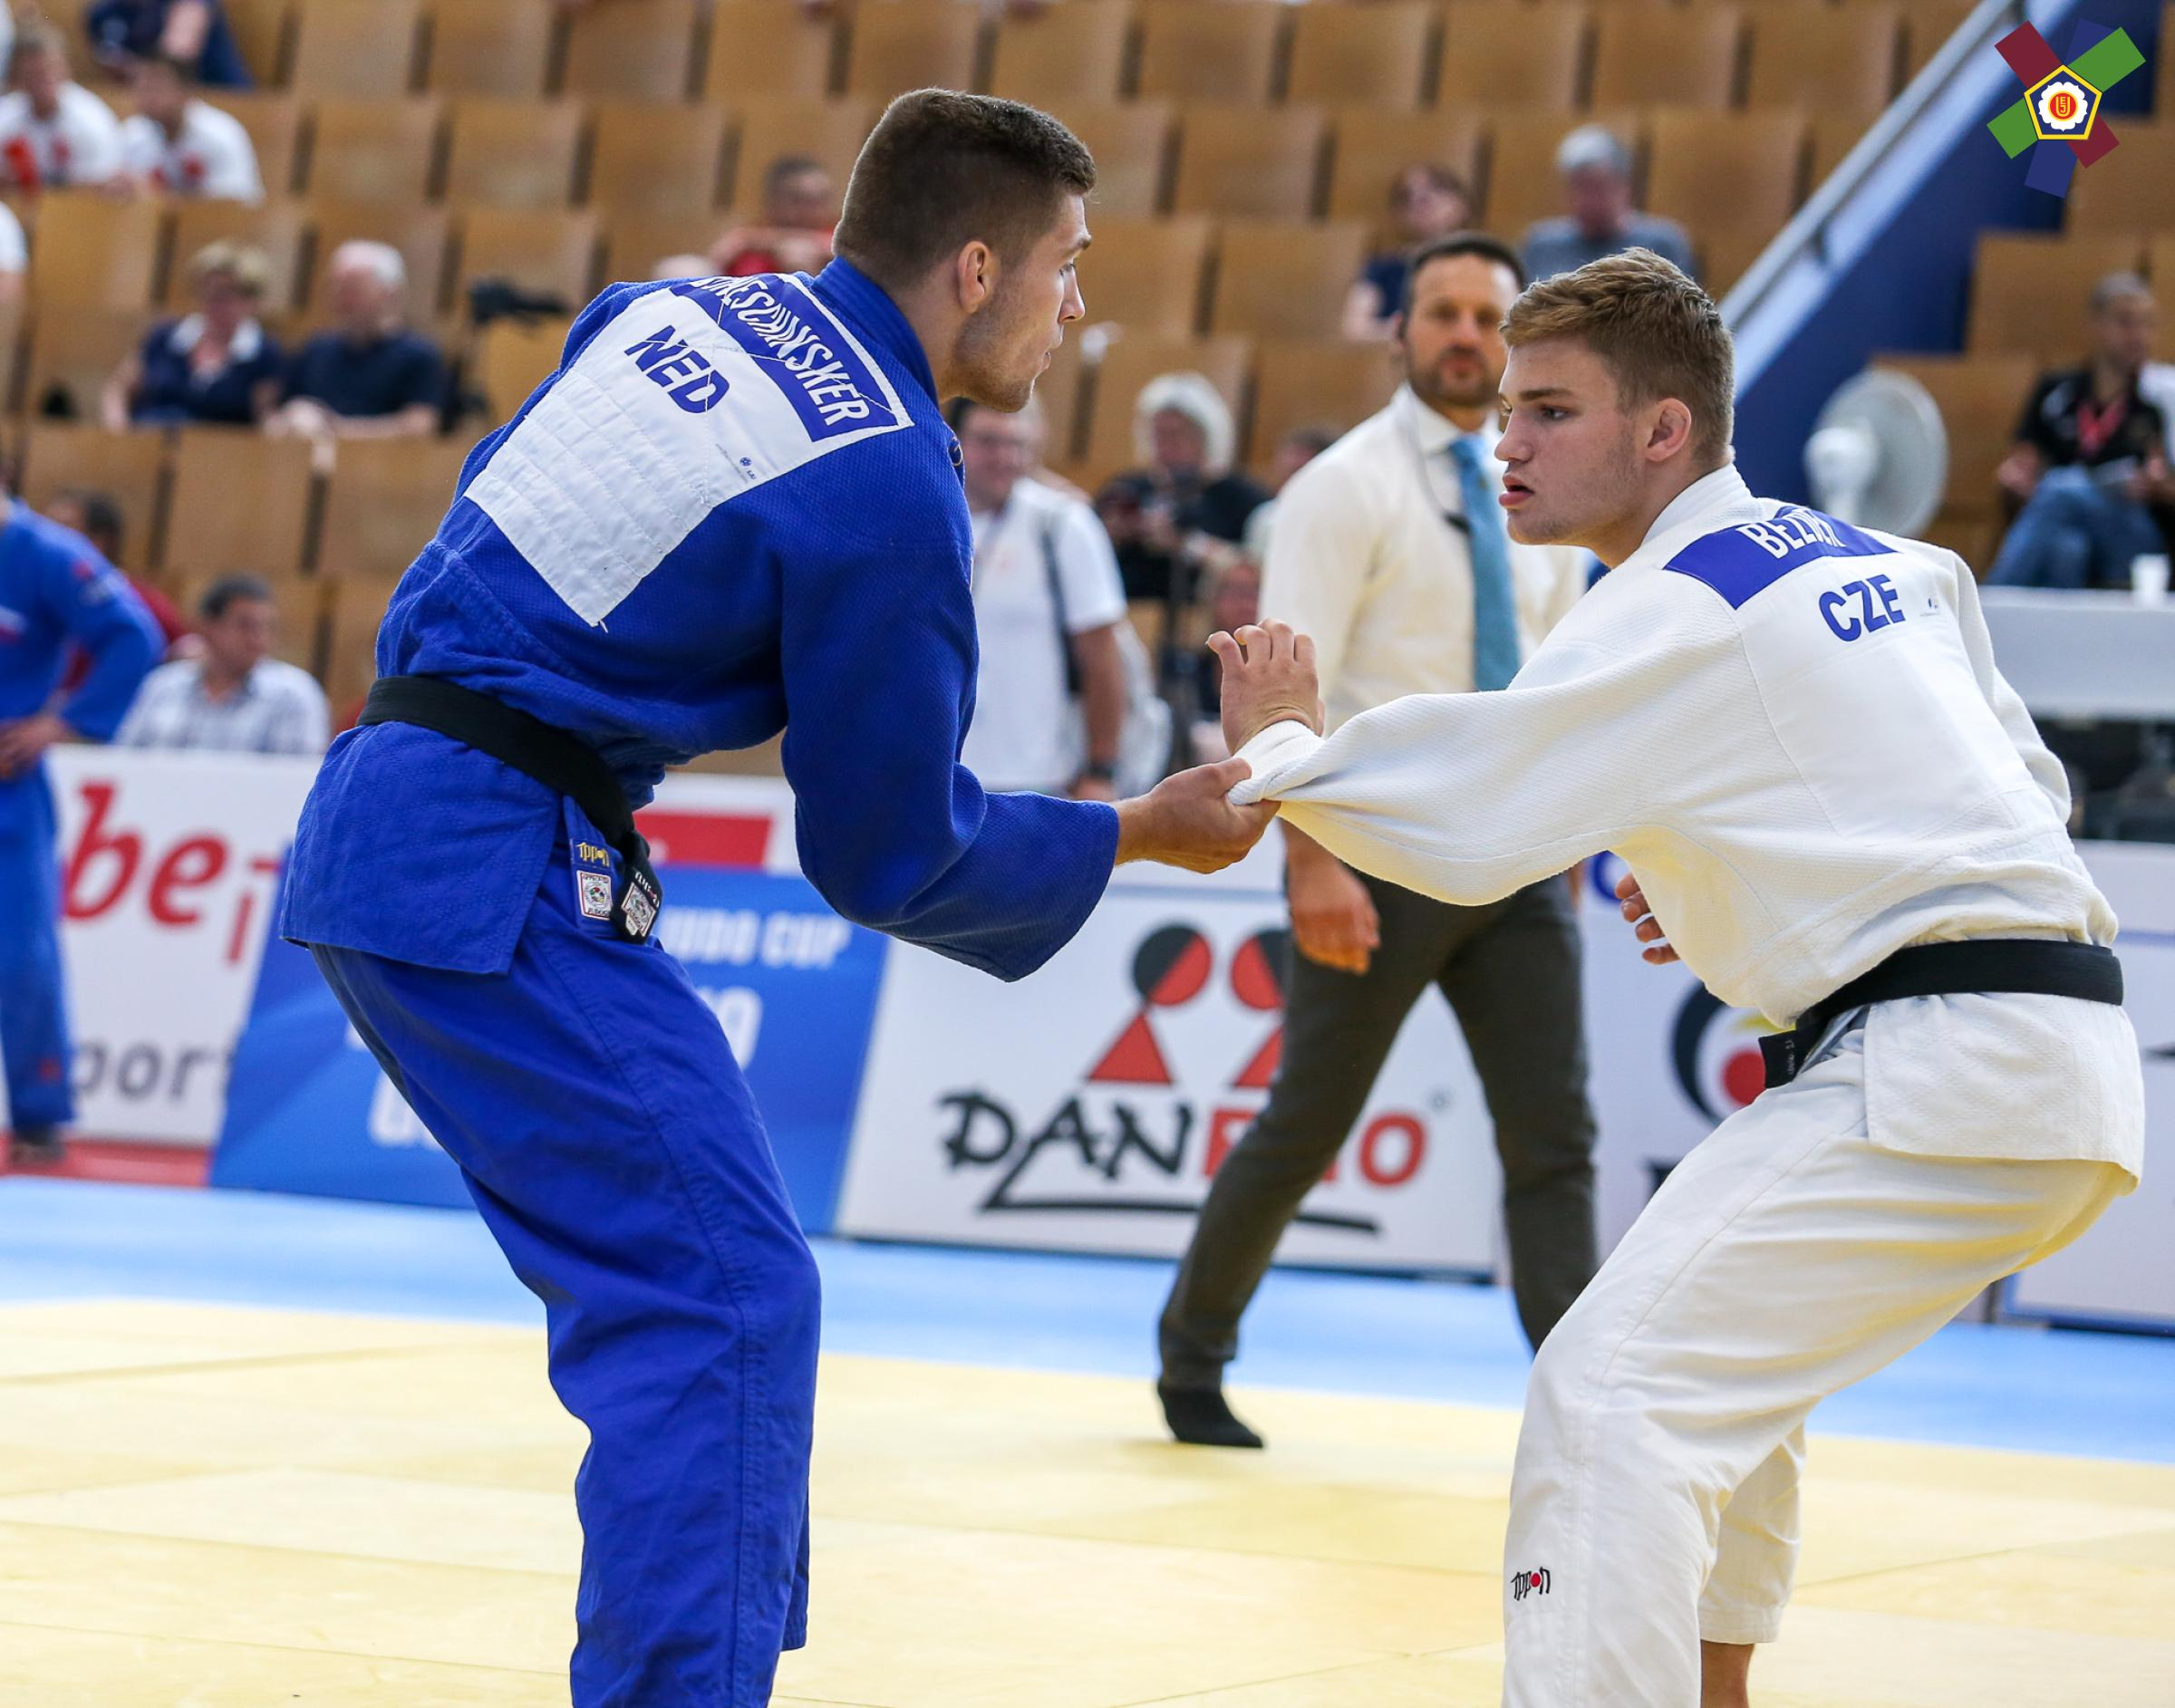 Judo-Junior-European-cup-Berlin-2019-BEZDEK-Martin-1